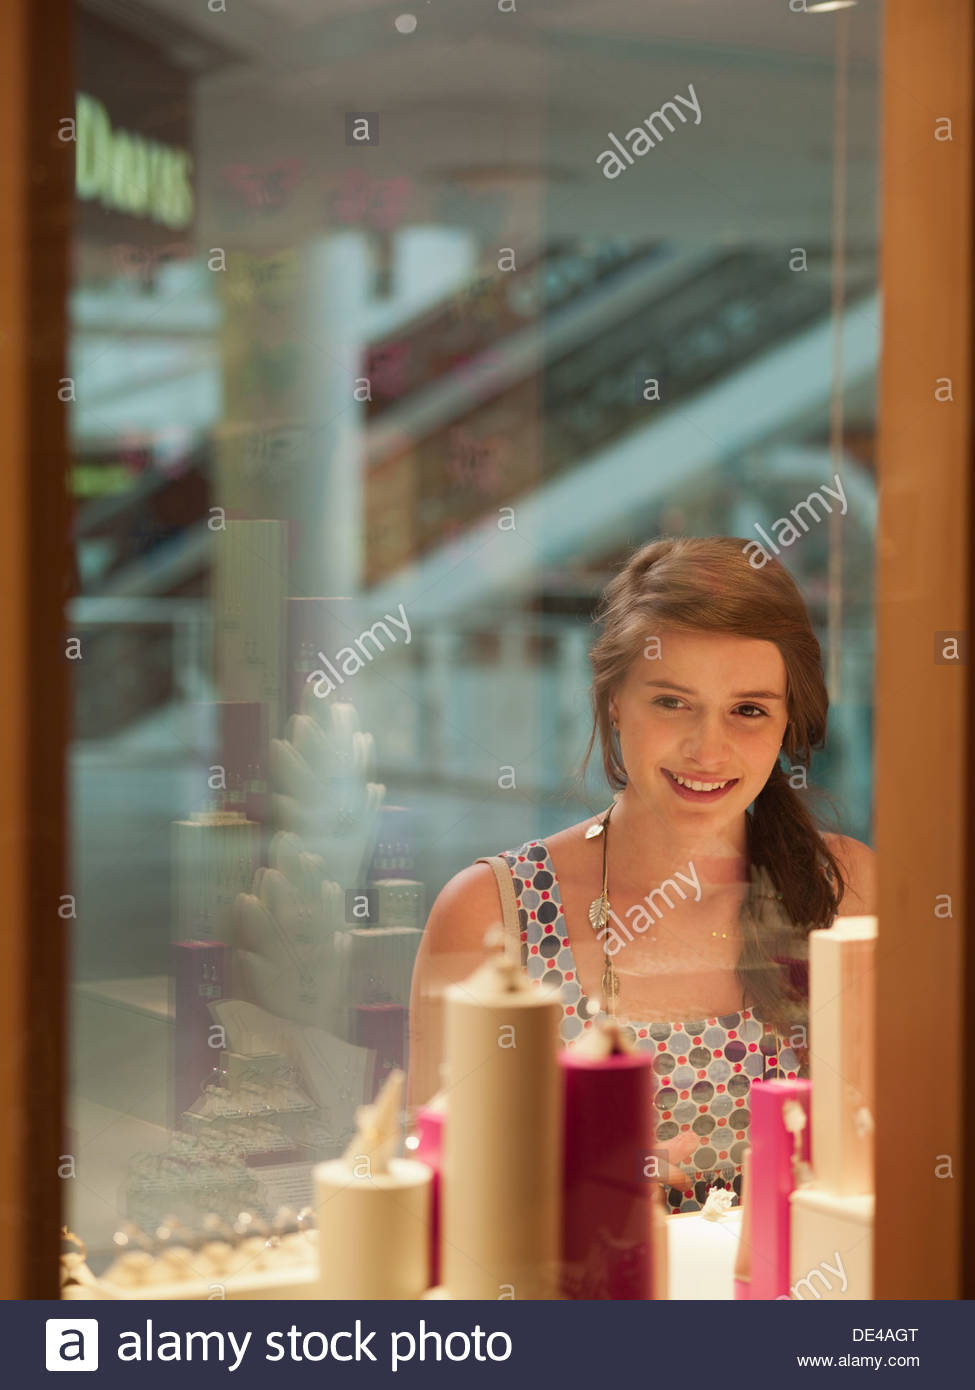 Teenage girl looking at jewelry in display case - Stock Image